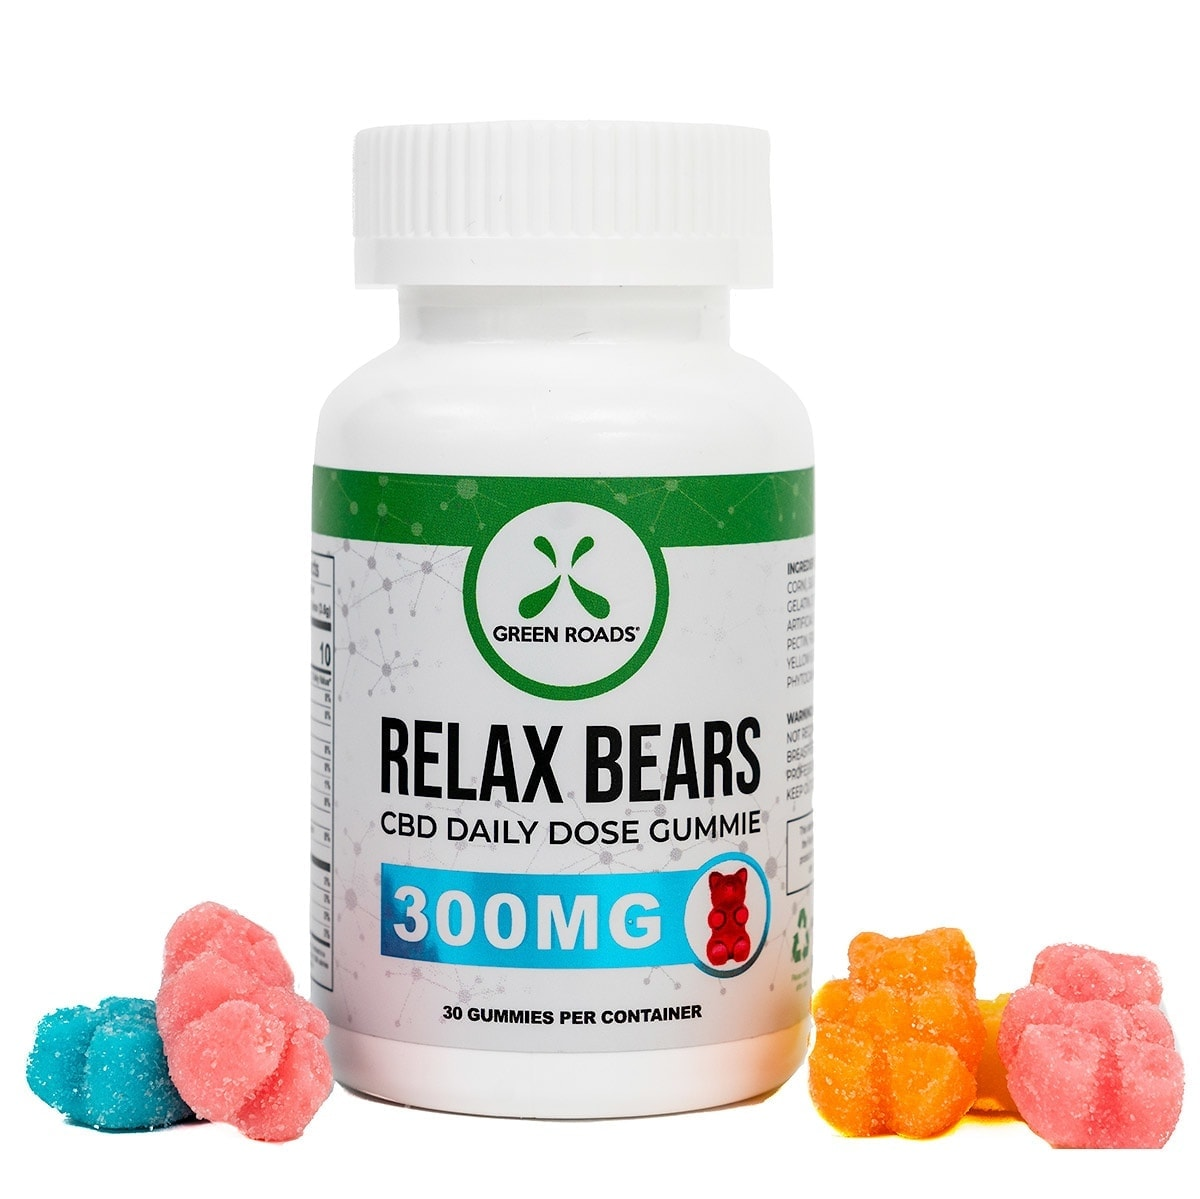 green-roads-cbd-gummy-bears-30-count-300mg-of-cbd